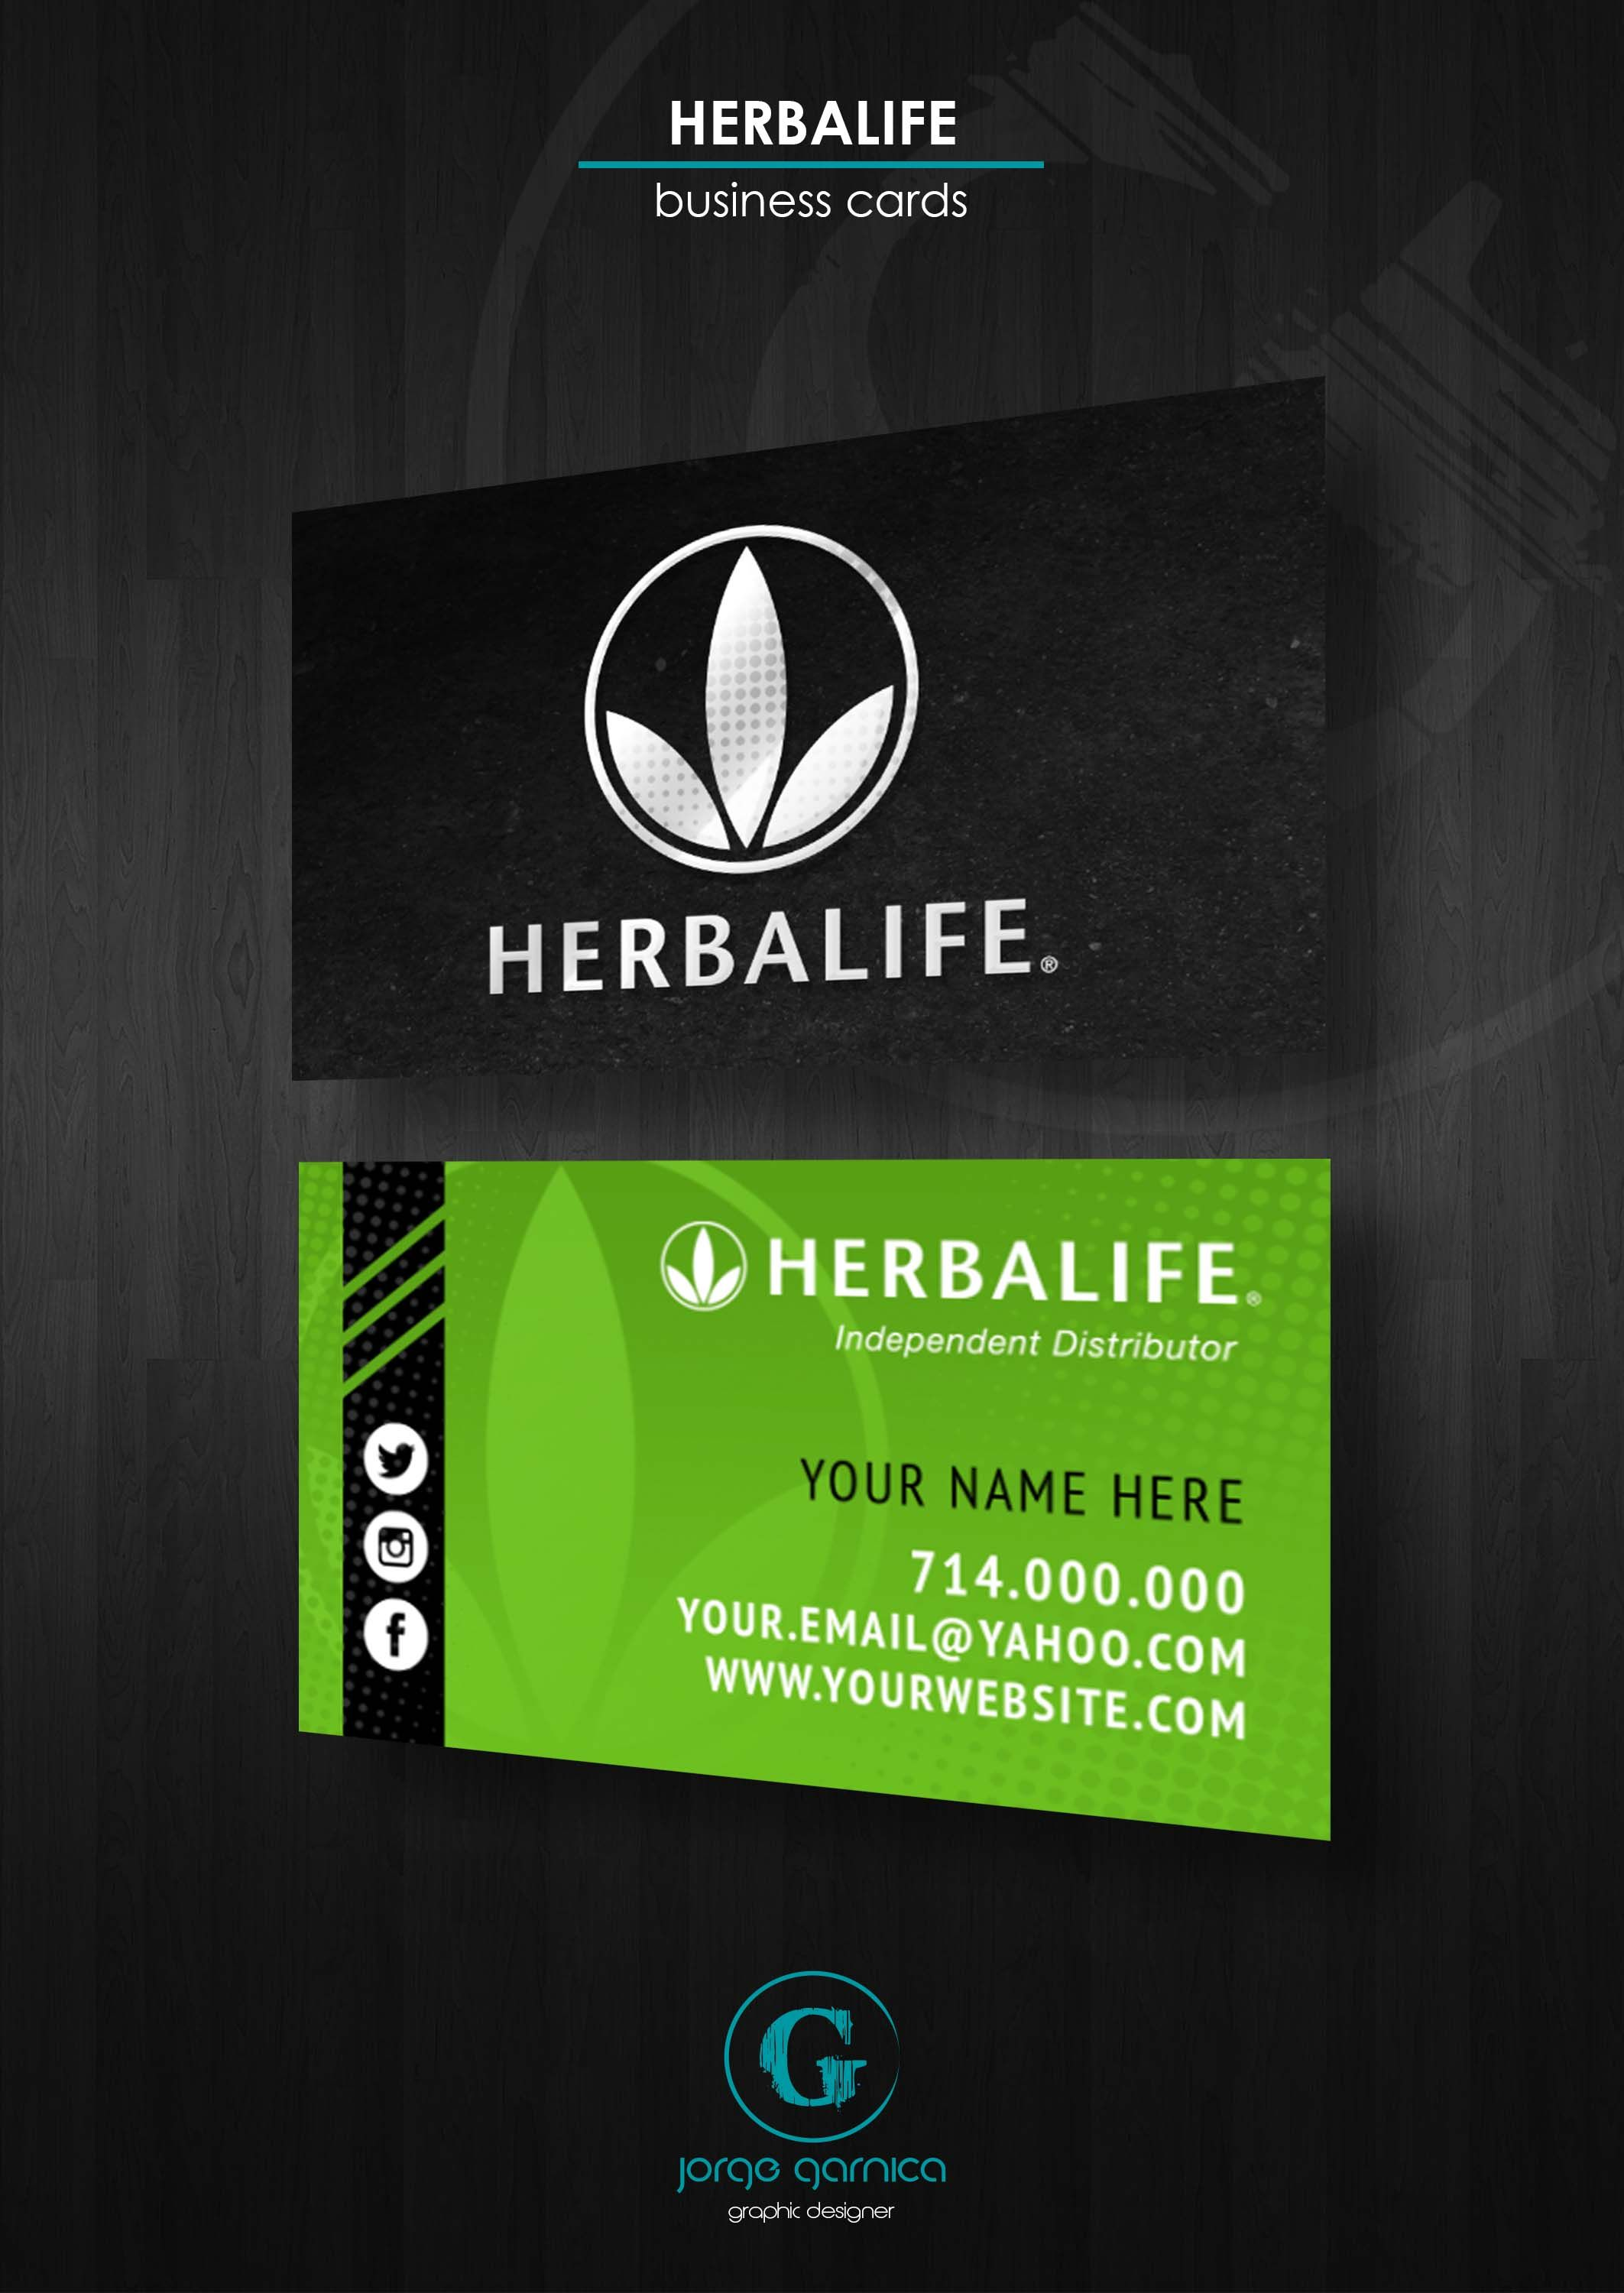 Herbalife business card design template print pinterest herbalife business card design template fbccfo Gallery